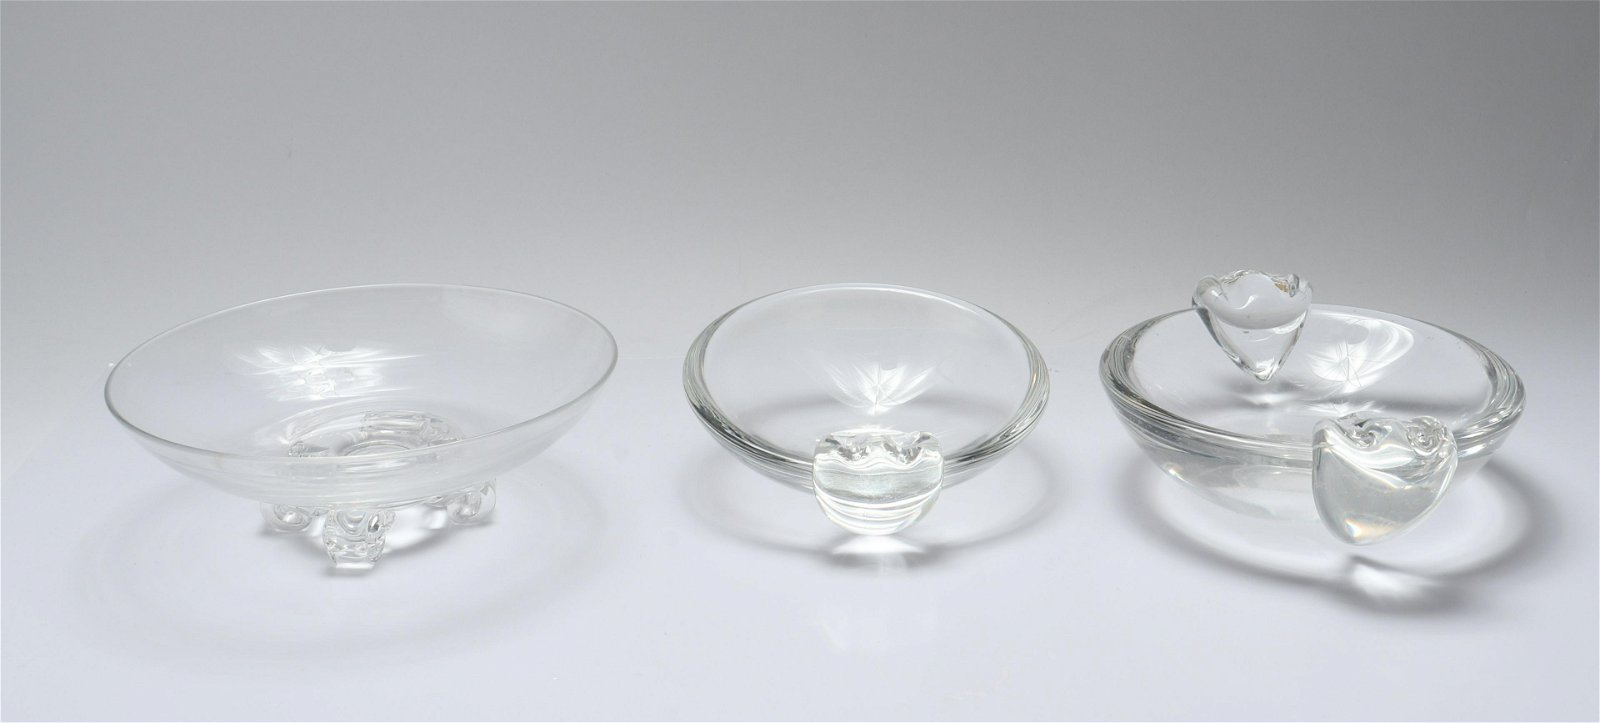 Steuben Collection of Glass Bowls, 3